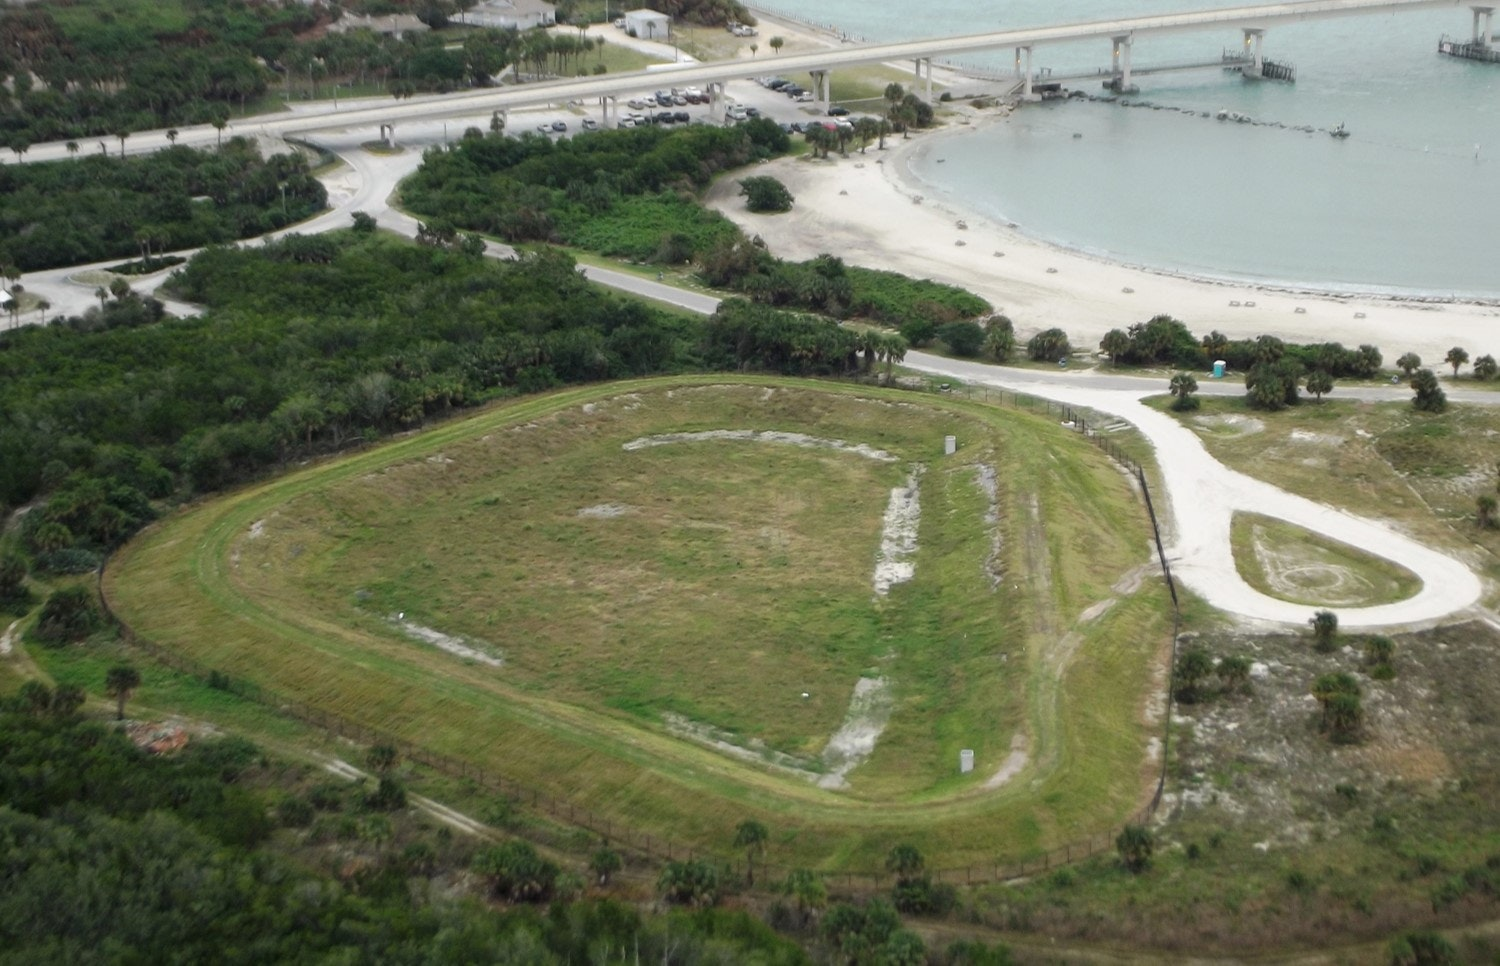 aerial view of completed sand storage area to the North of tide pool